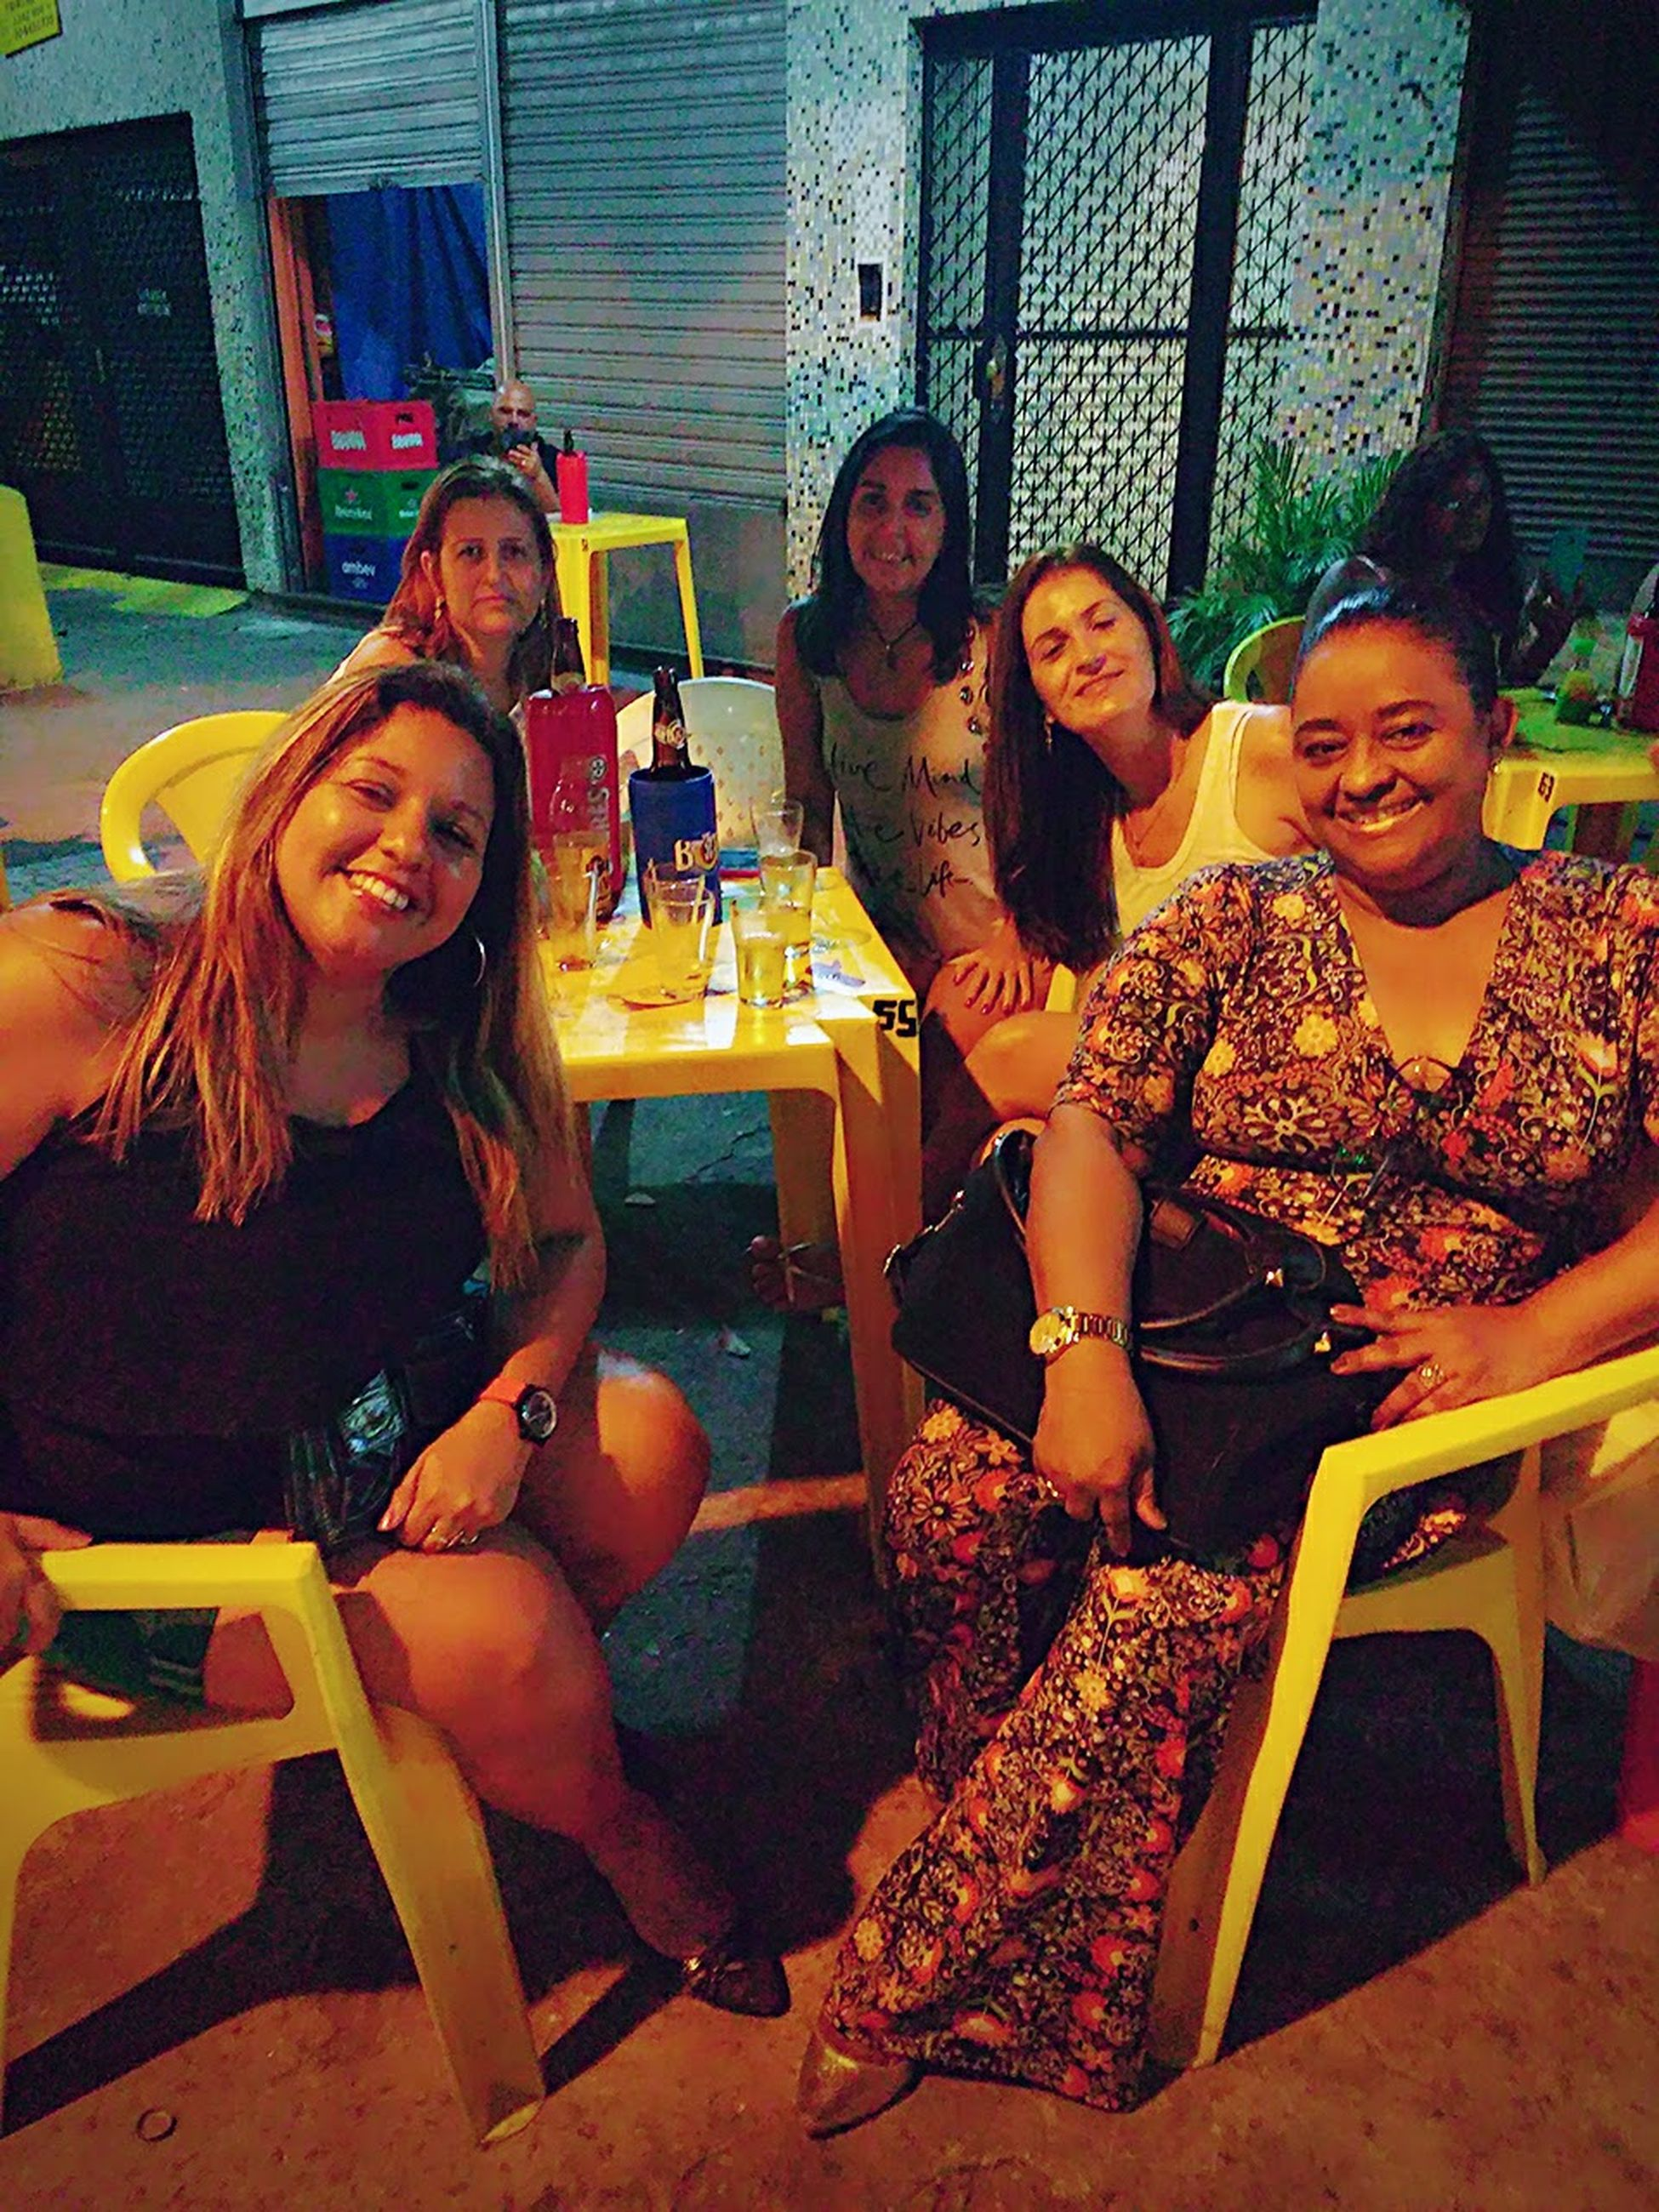 females, teenager, restaurant, women, girls, happiness, friendship, lifestyles, smiling, bar - drink establishment, adult, beauty, togetherness, people, indoors, young women, cheerful, young adult, night, nightlife, unity, happy hour, fast food